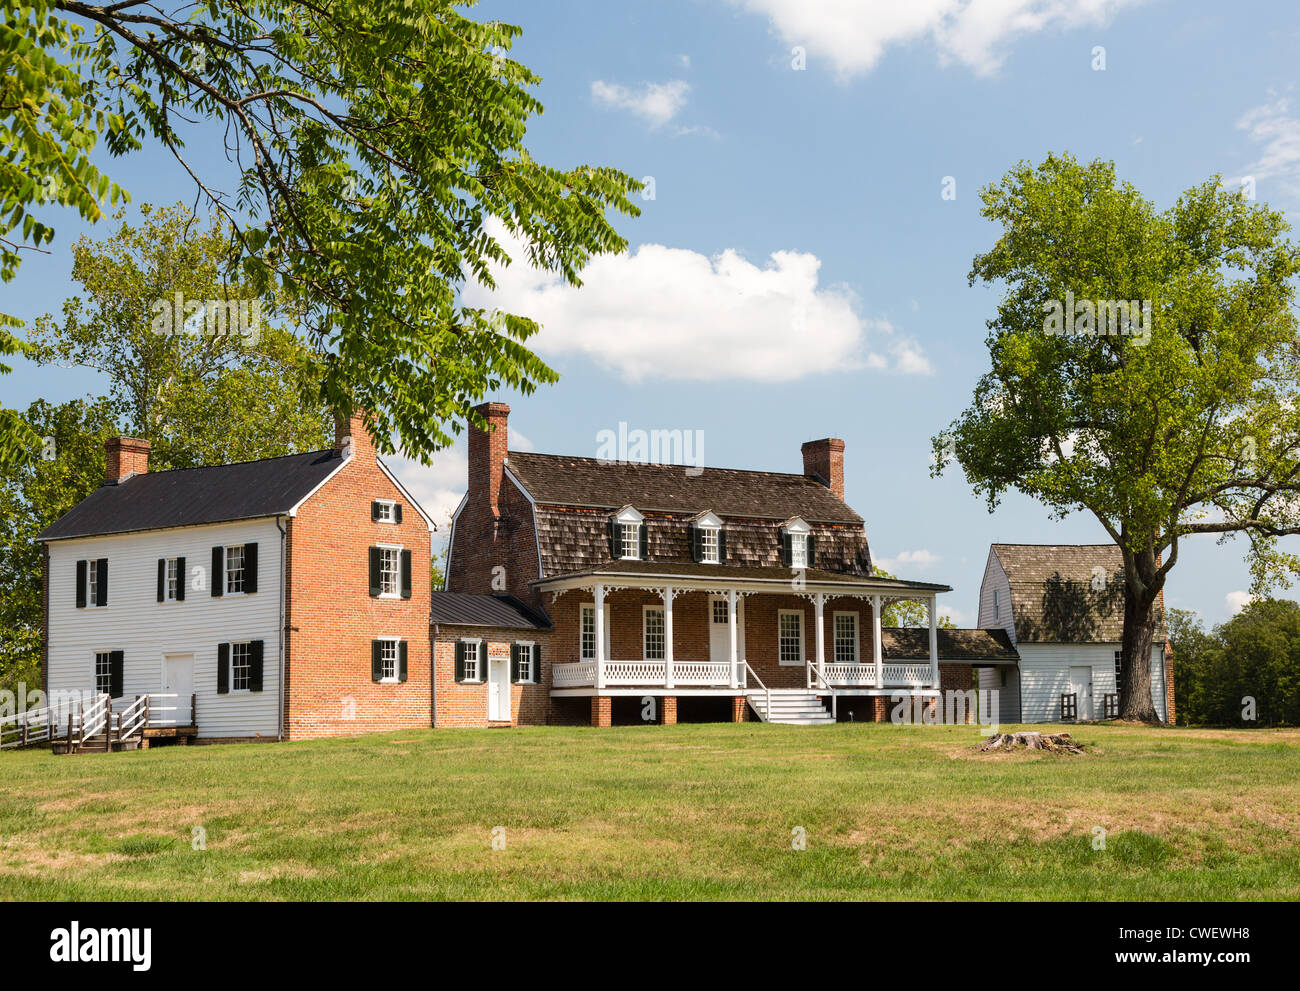 Haberdeventure or Thomas Stone House - a National Historic site in Charles County, Maryland, USA - Stock Image